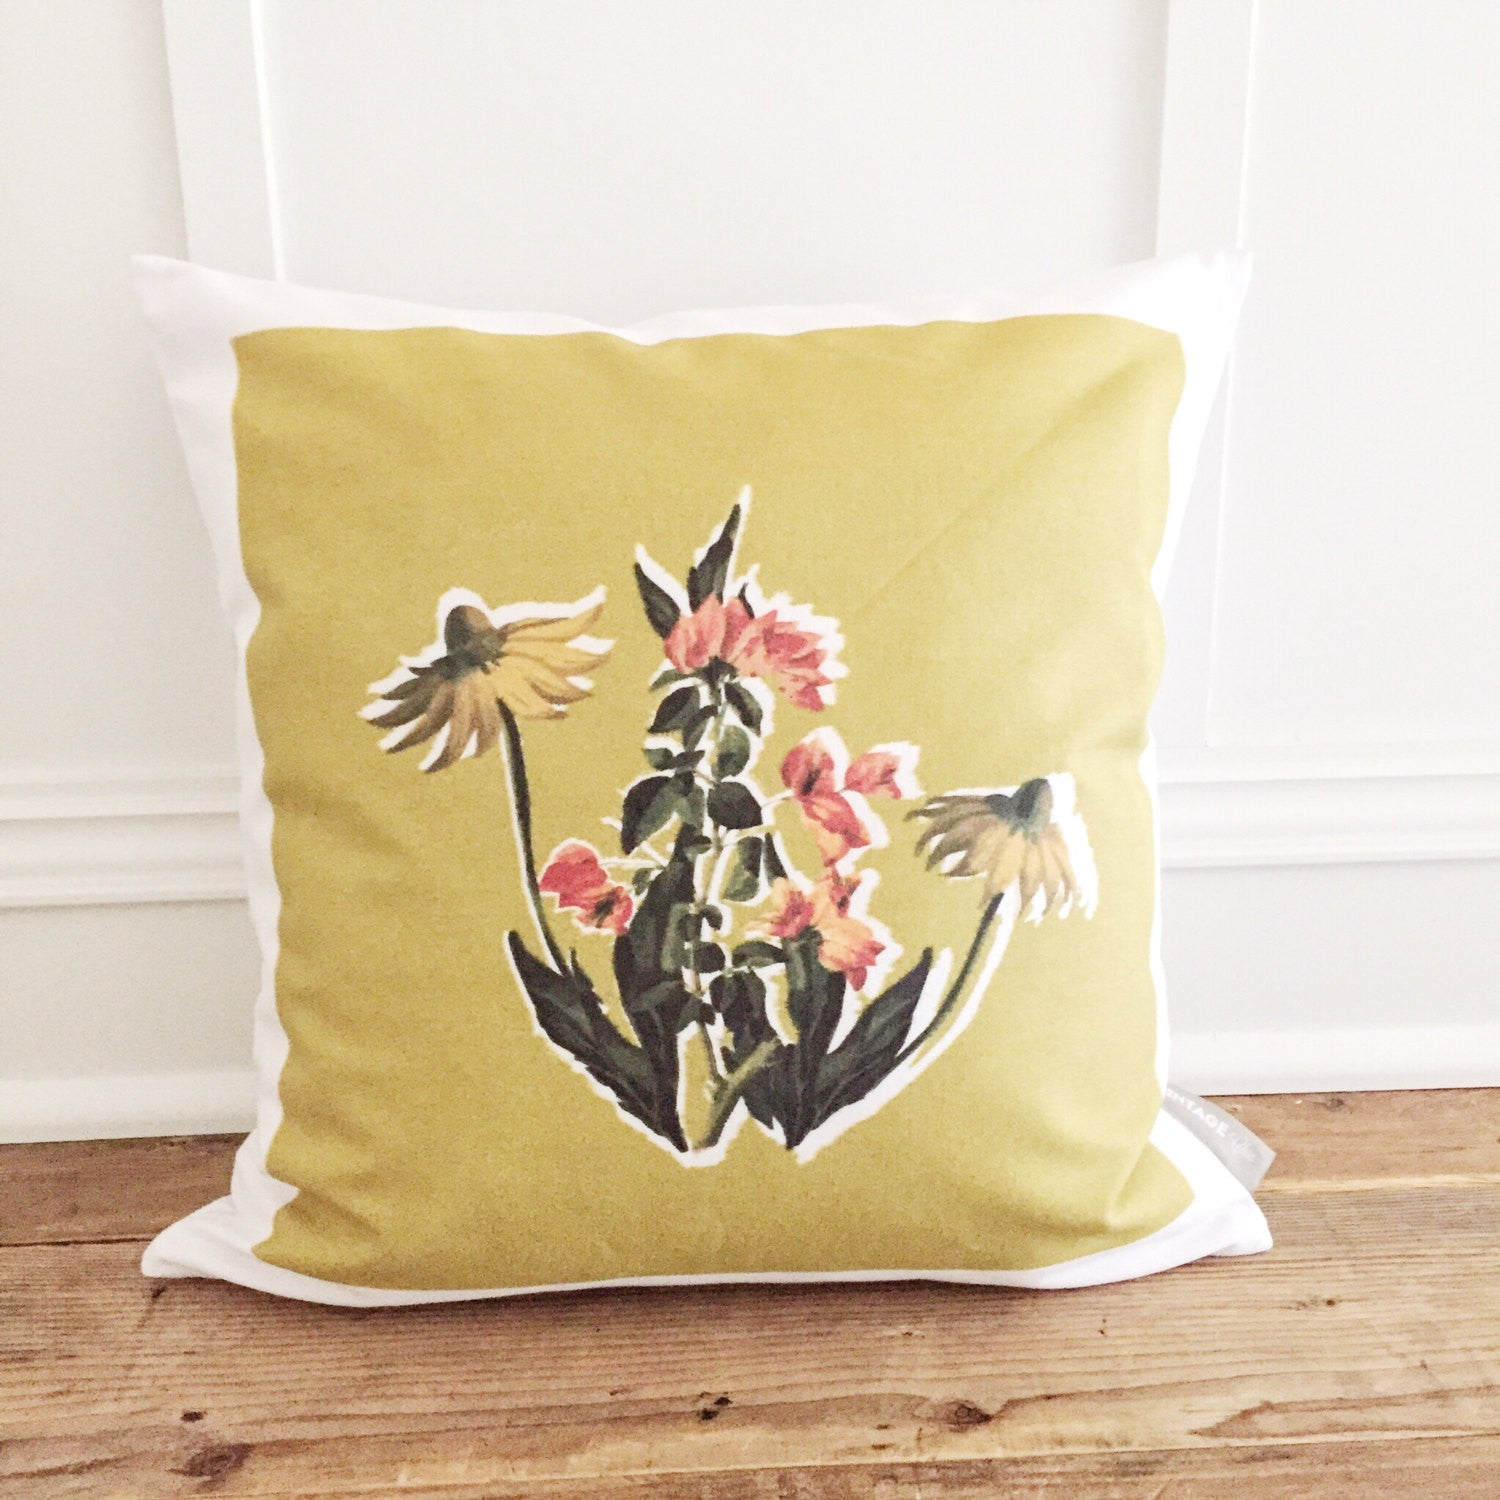 Retro Floral Pillow Cover - Linen and Ivory